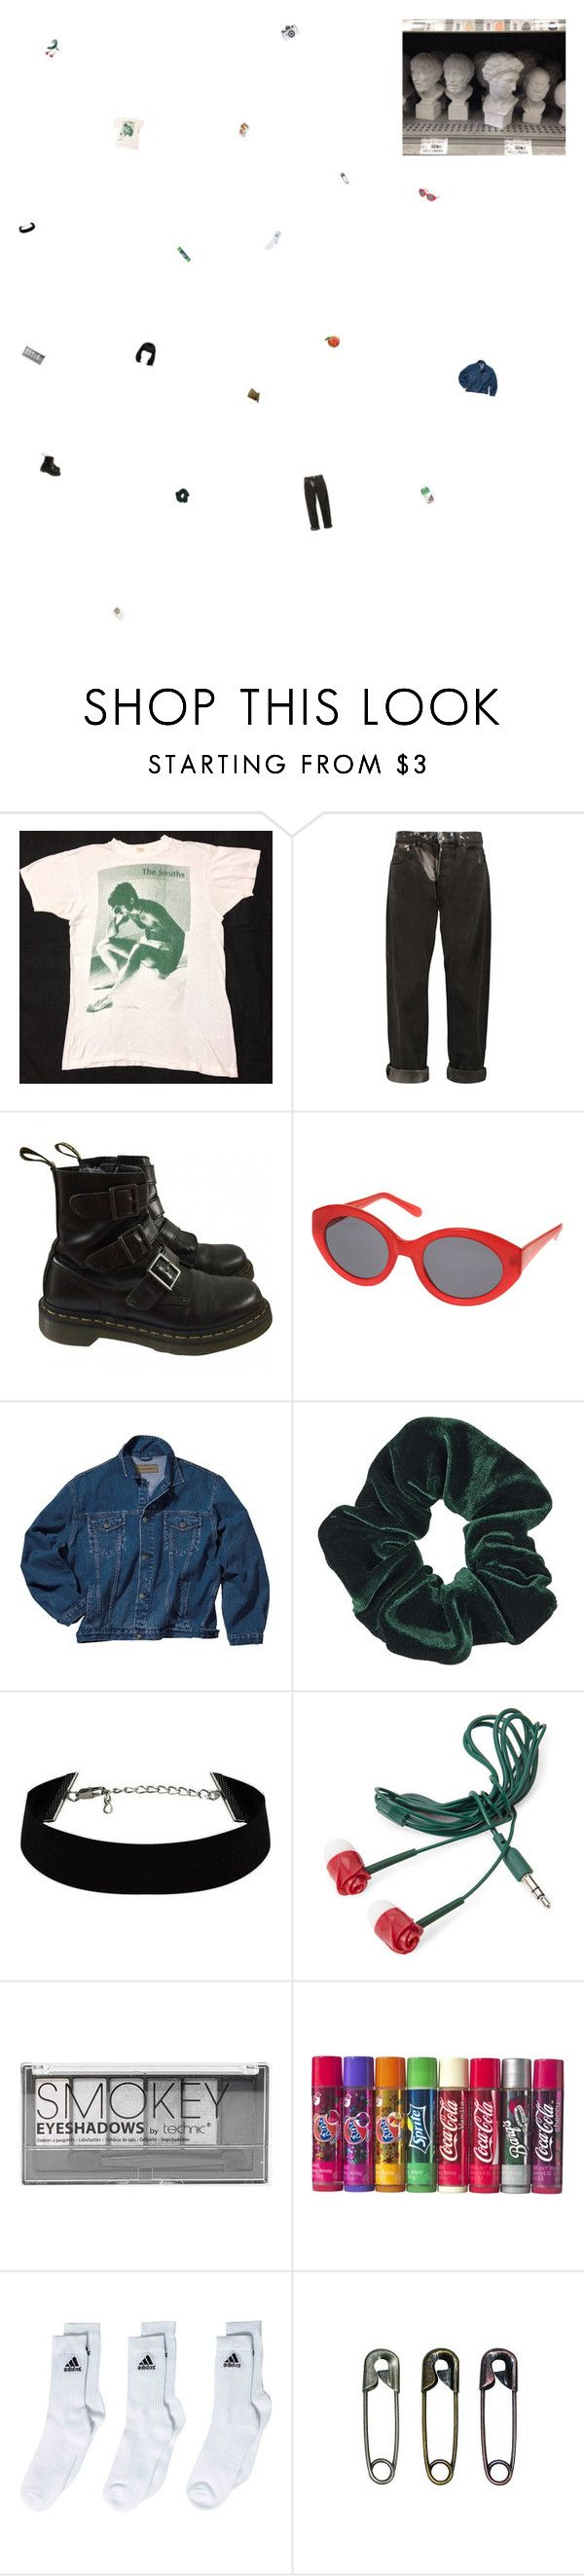 """why do i smile at people who i'd much rather kick in the eye?"" by the-soft-parade ❤ liked on Polyvore featuring McQ by Alexander McQueen, Dr. Martens, Topshop, Forever 21, Boohoo, adidas, Concord, Tim Holtz, Holga and vintage"